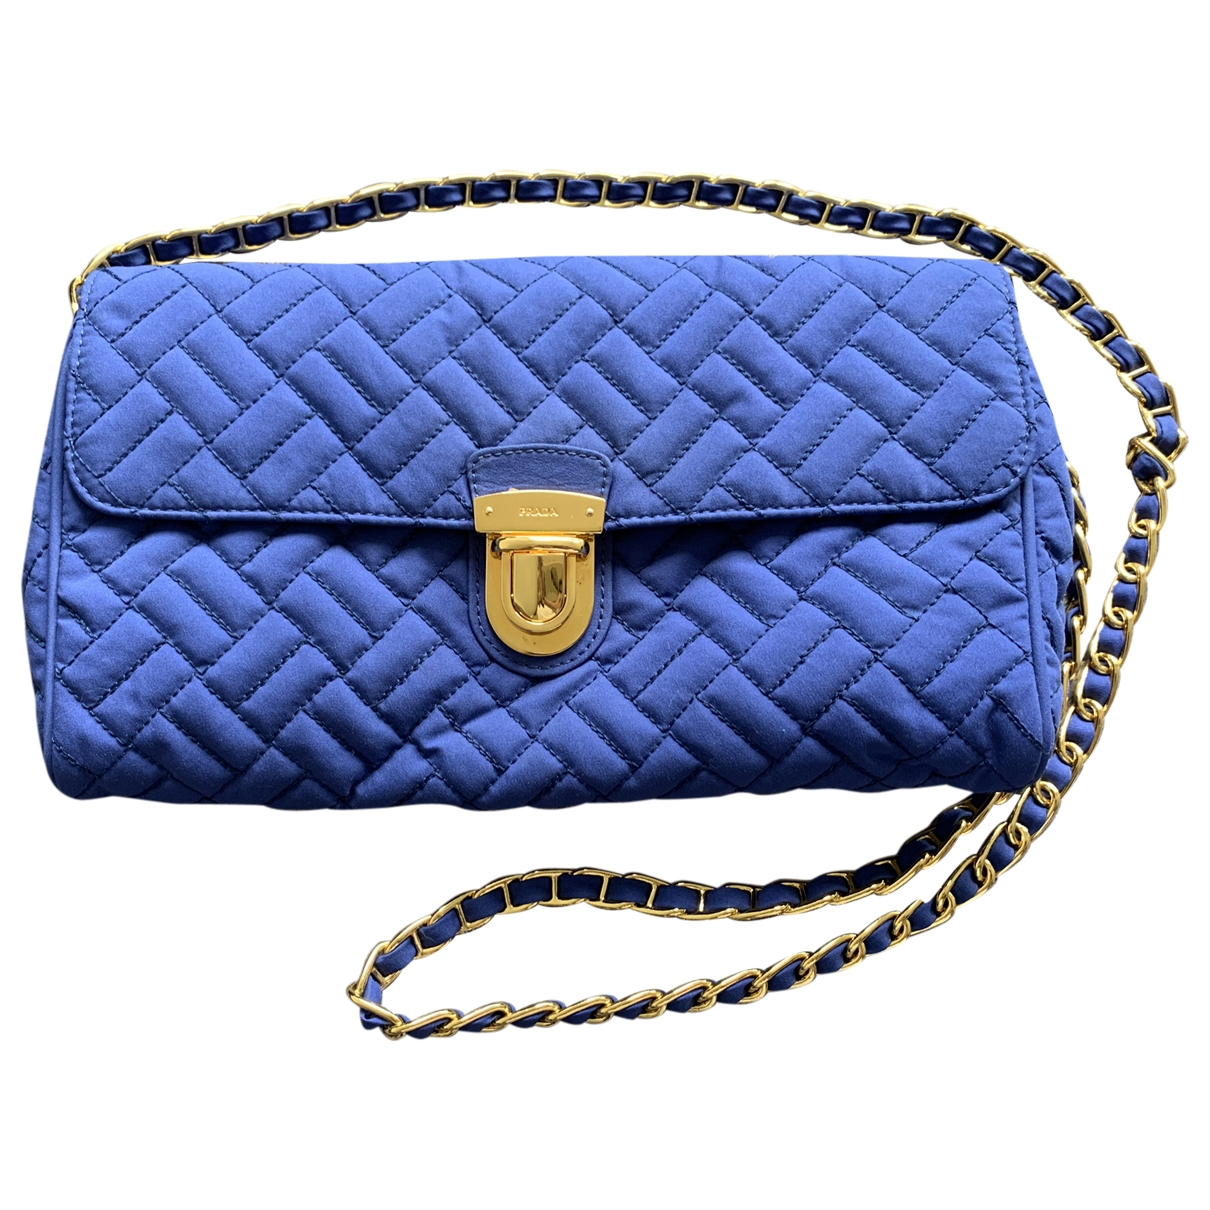 Prada \N Blue Cloth handbag for Women \N